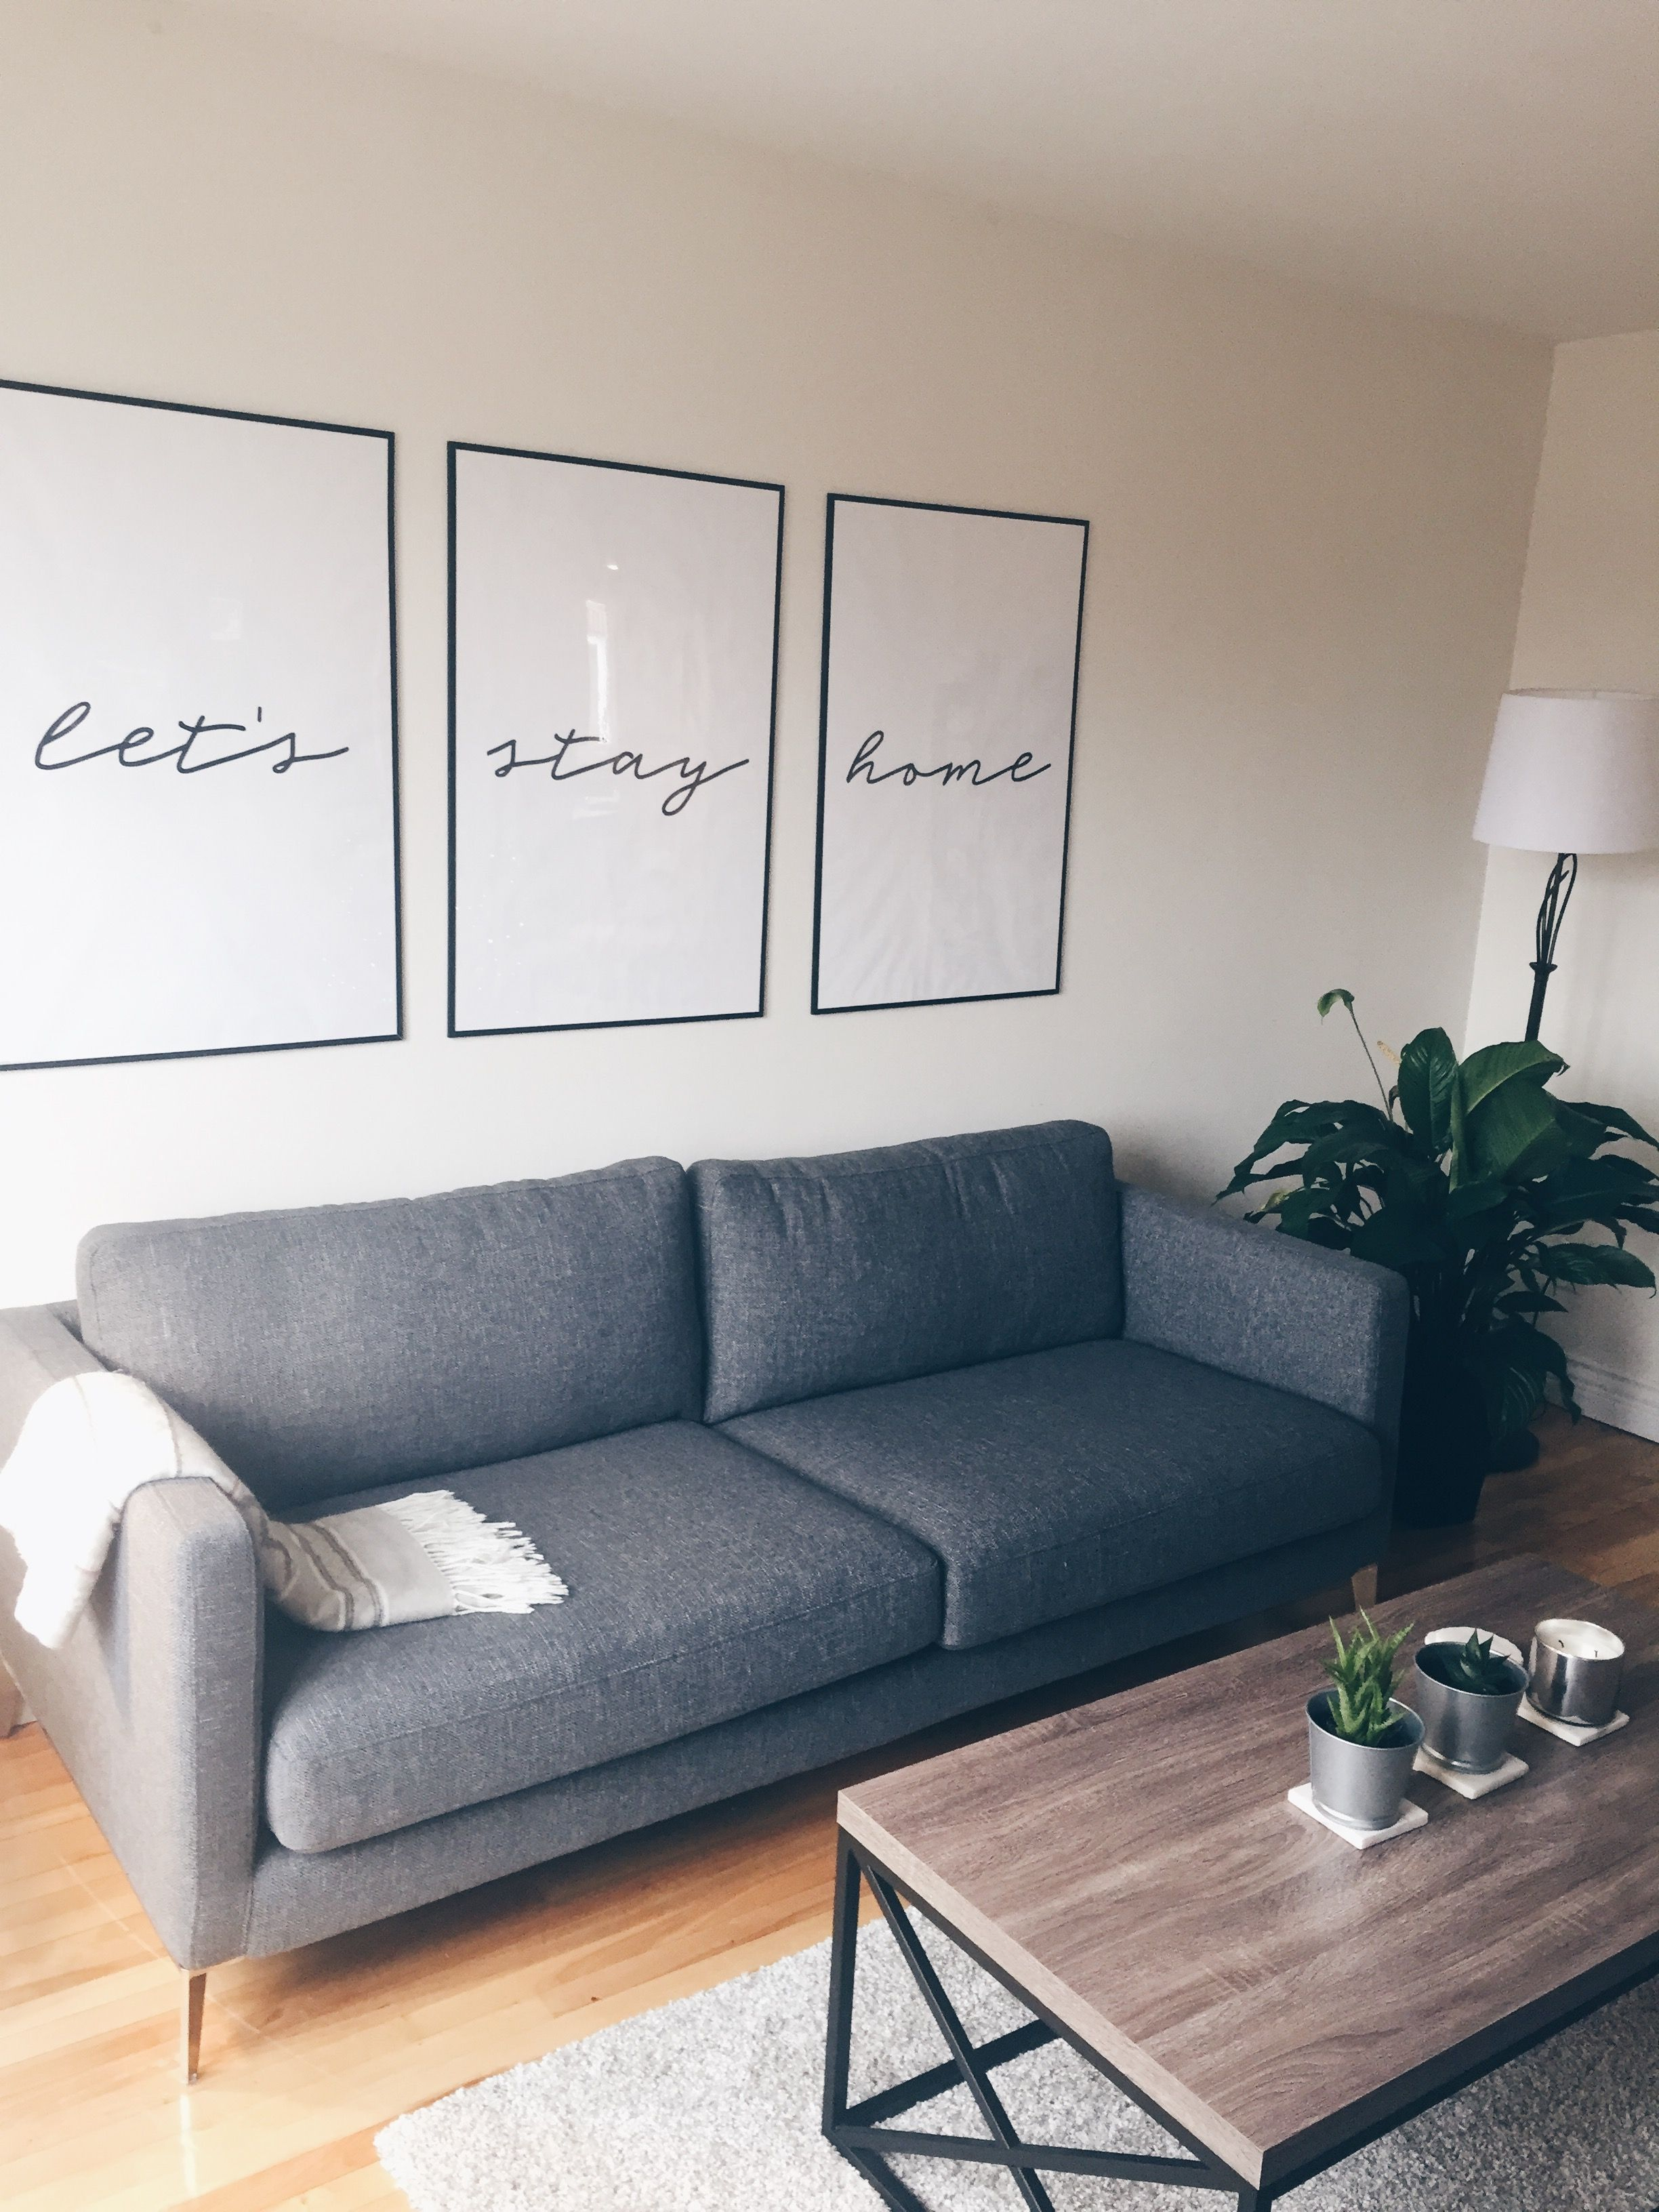 Minimalist, Grey, Wood, Hipster Living Room.